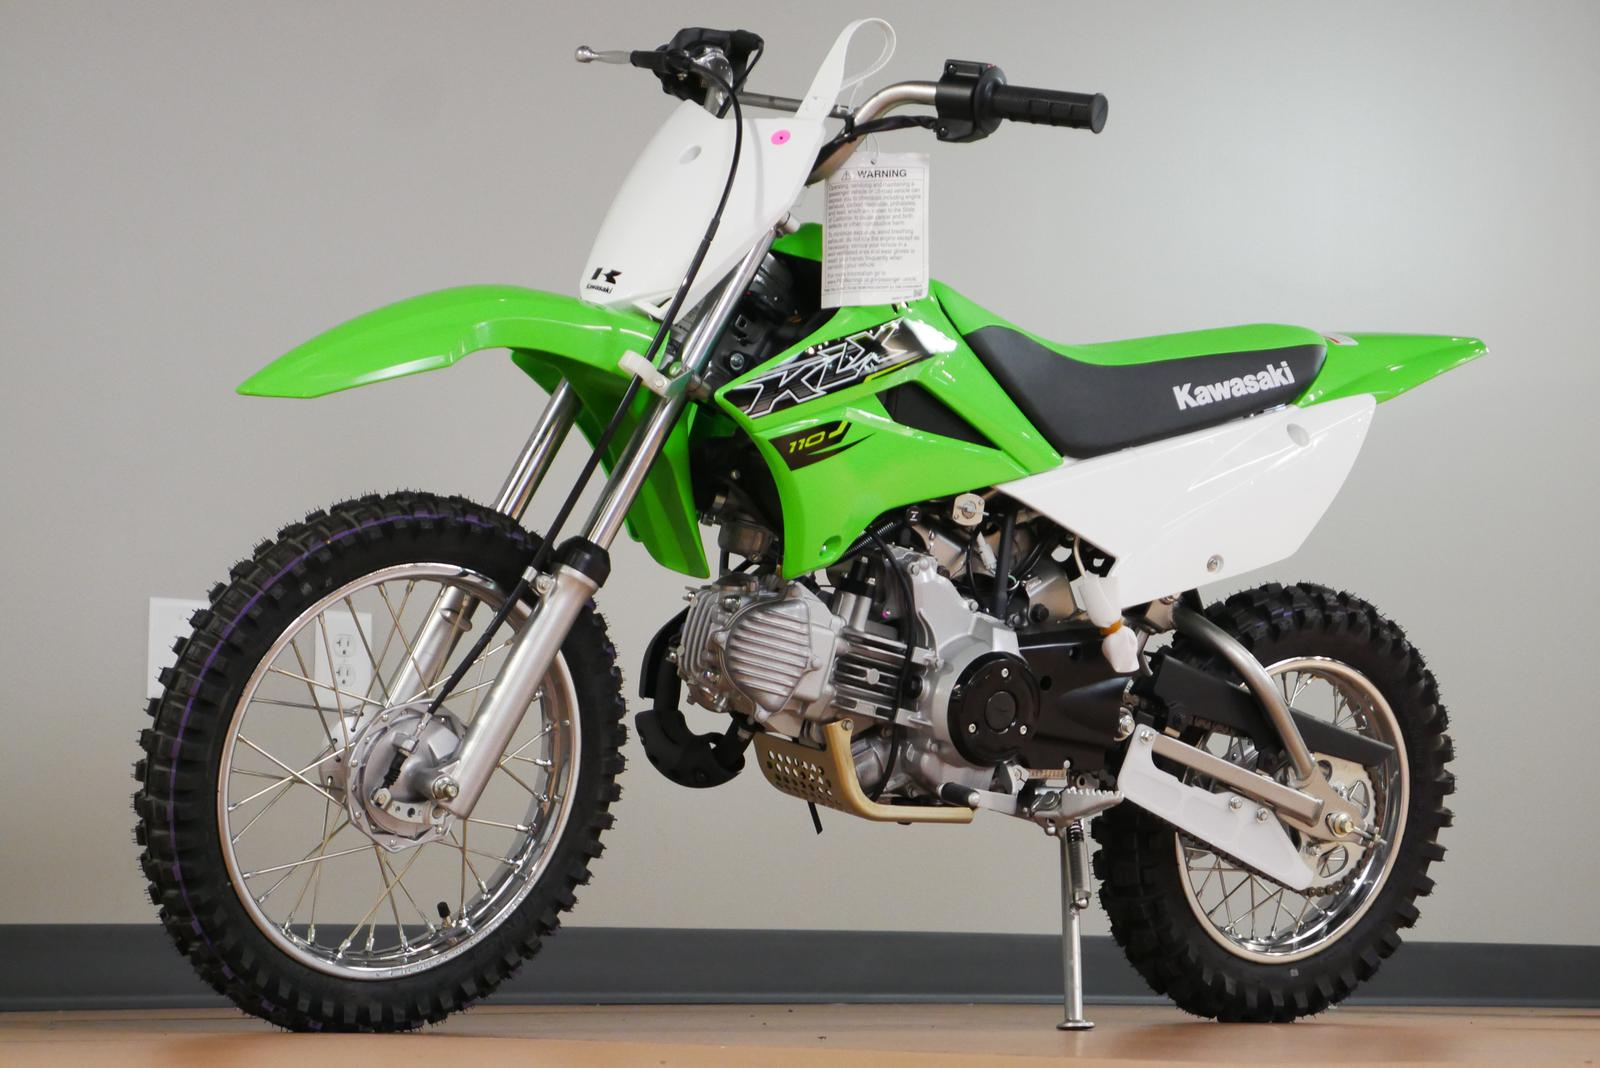 wiring diagram on 2019 kawasaki klx 110 for sale in indianapolis, in   flat out